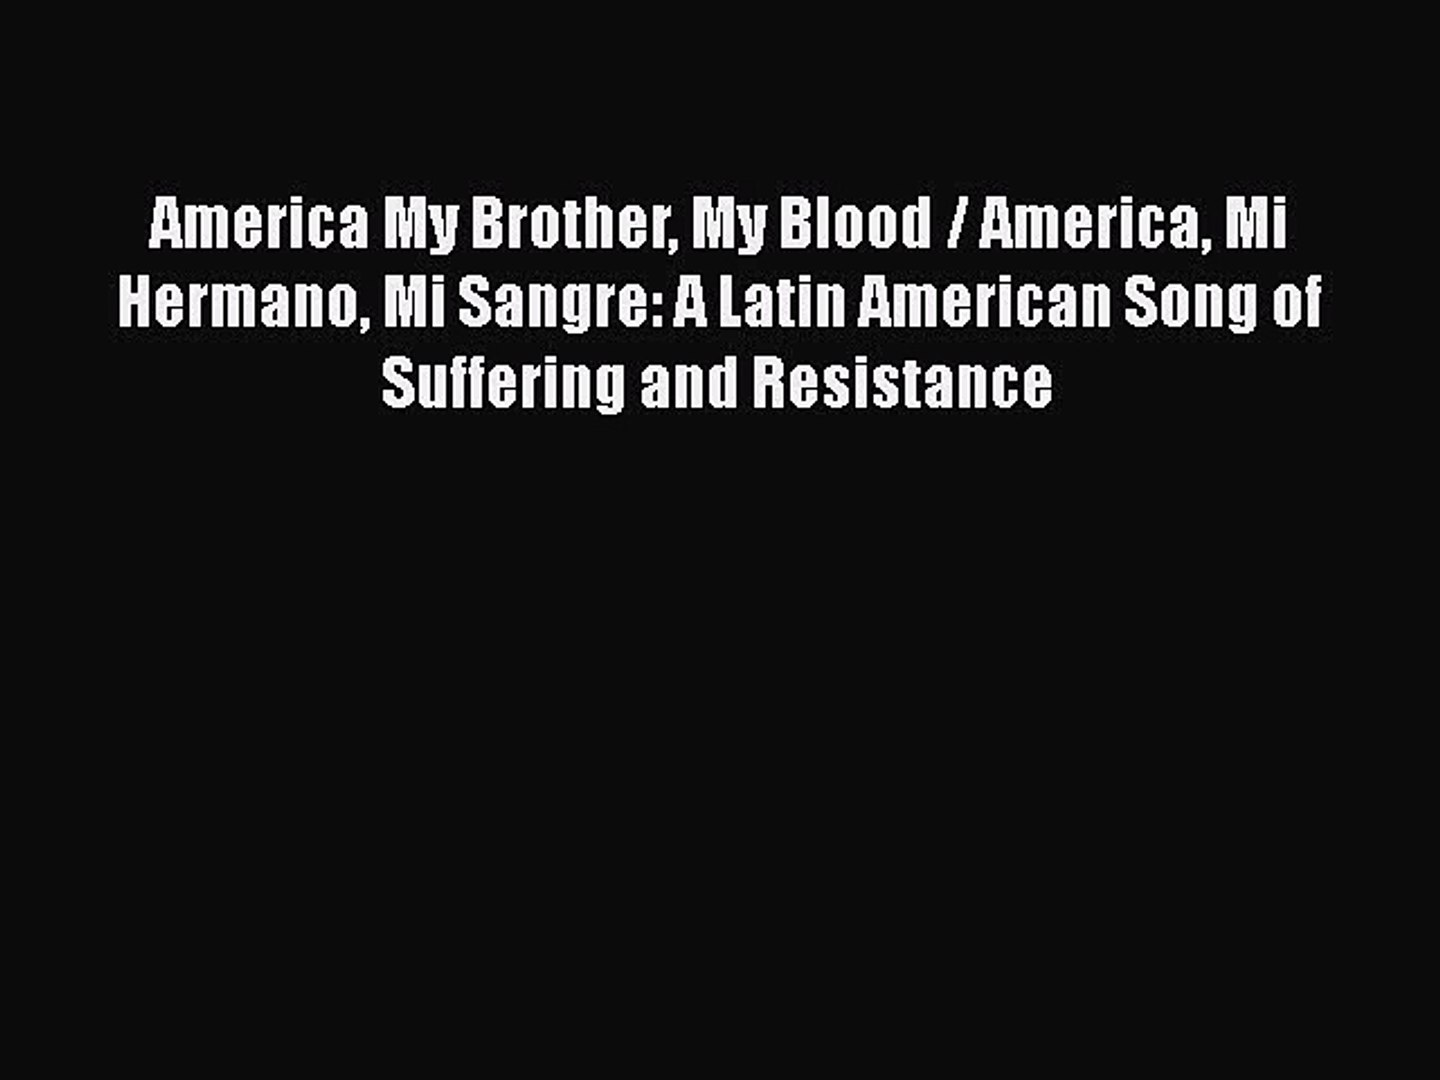 Read America My Brother My Blood / America Mi Hermano Mi Sangre: A Latin American Song of Suffering